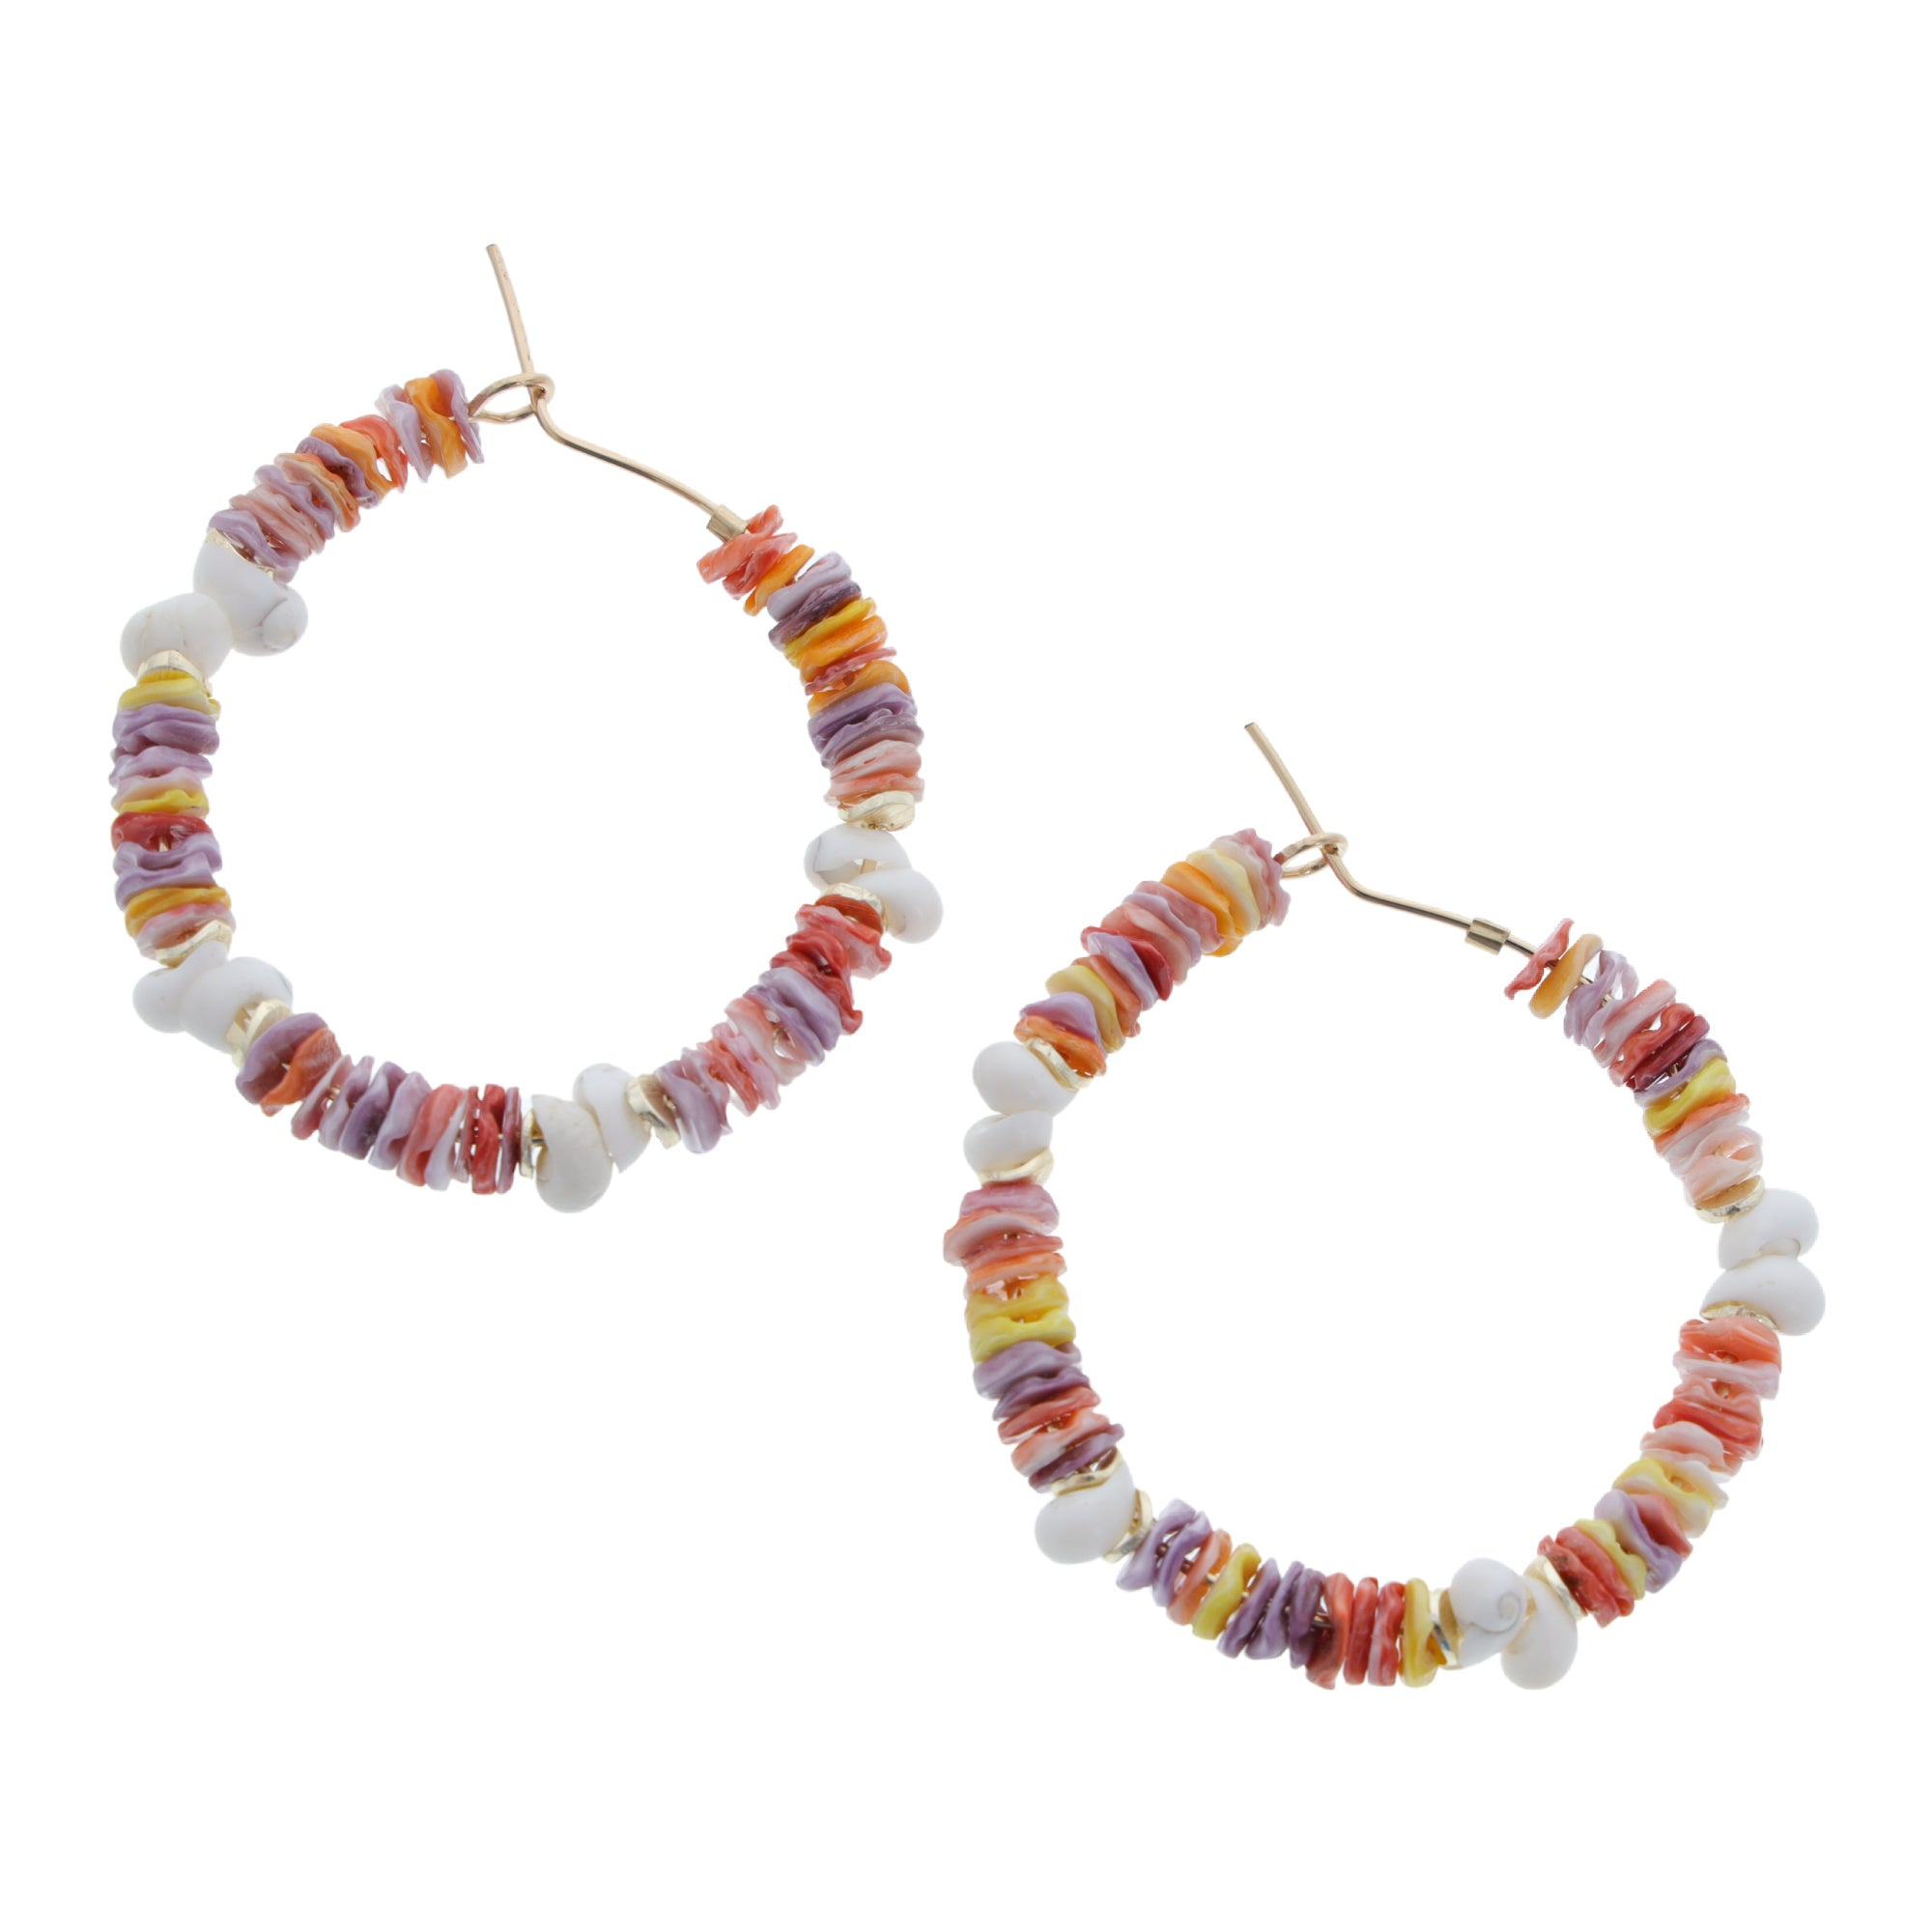 Temoe Hoop Earrings - 21 Degrees North Designs - 21ºN